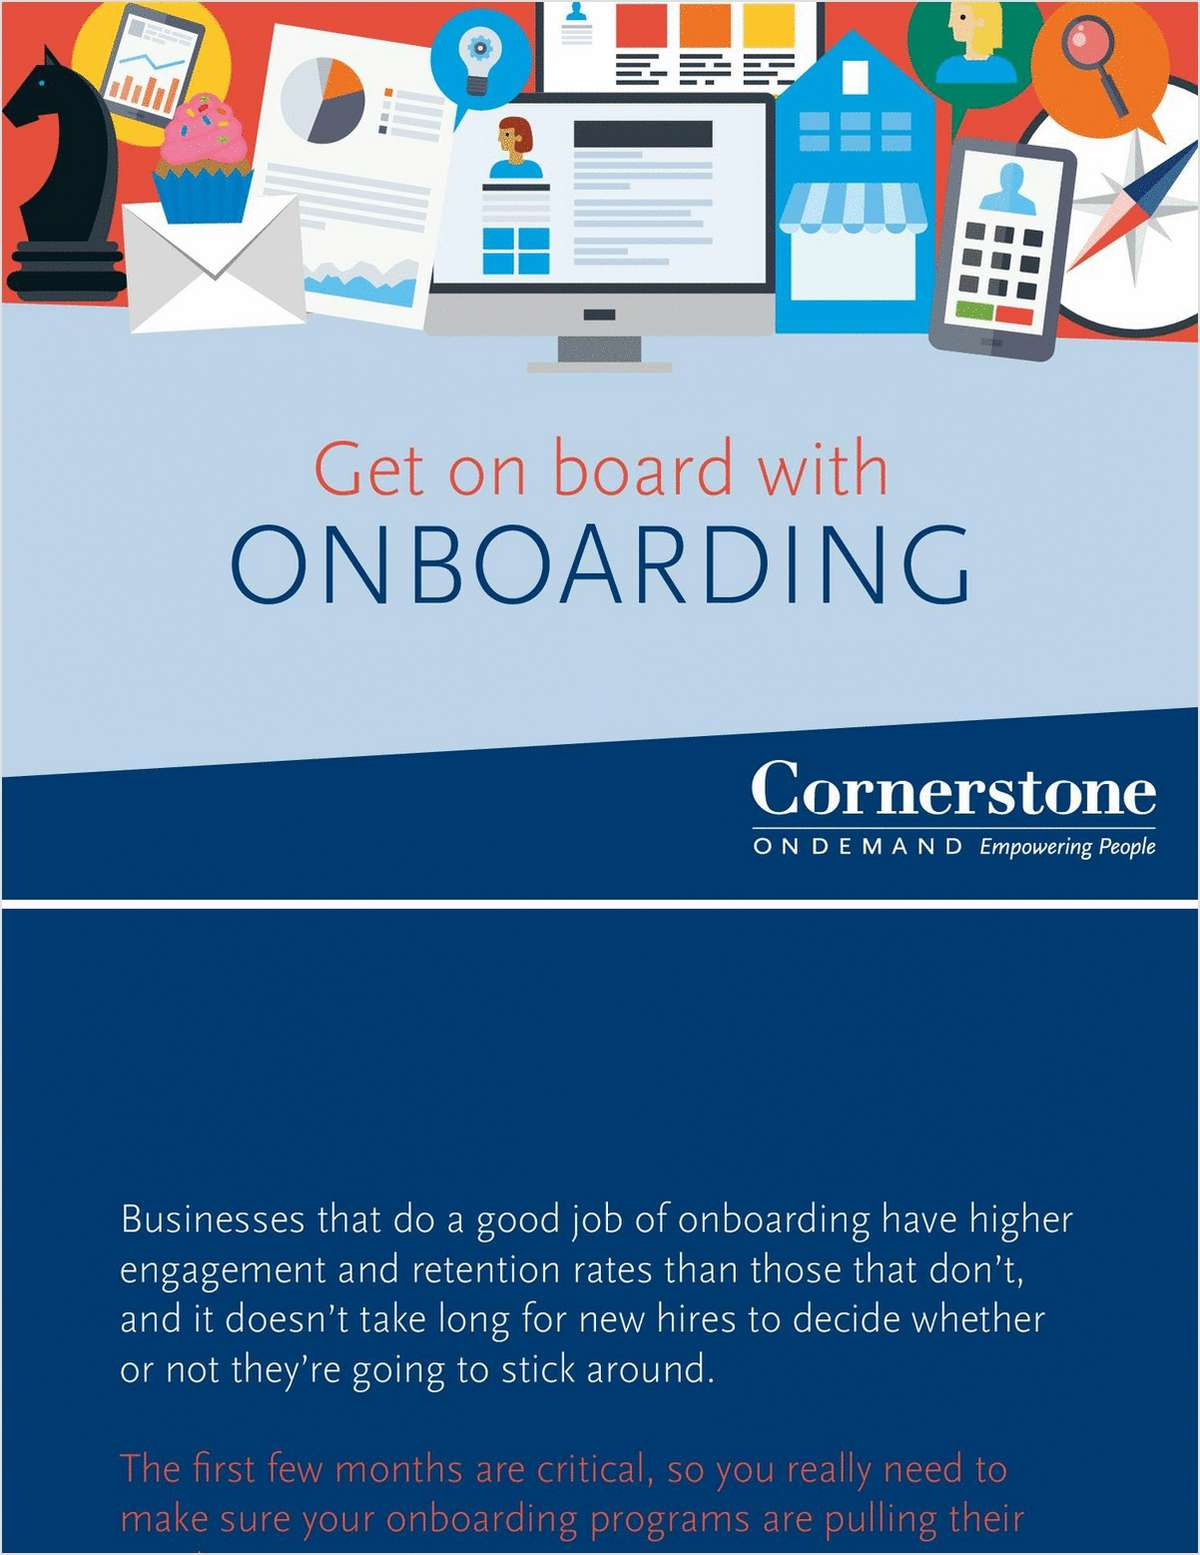 Get on Board with Onboarding